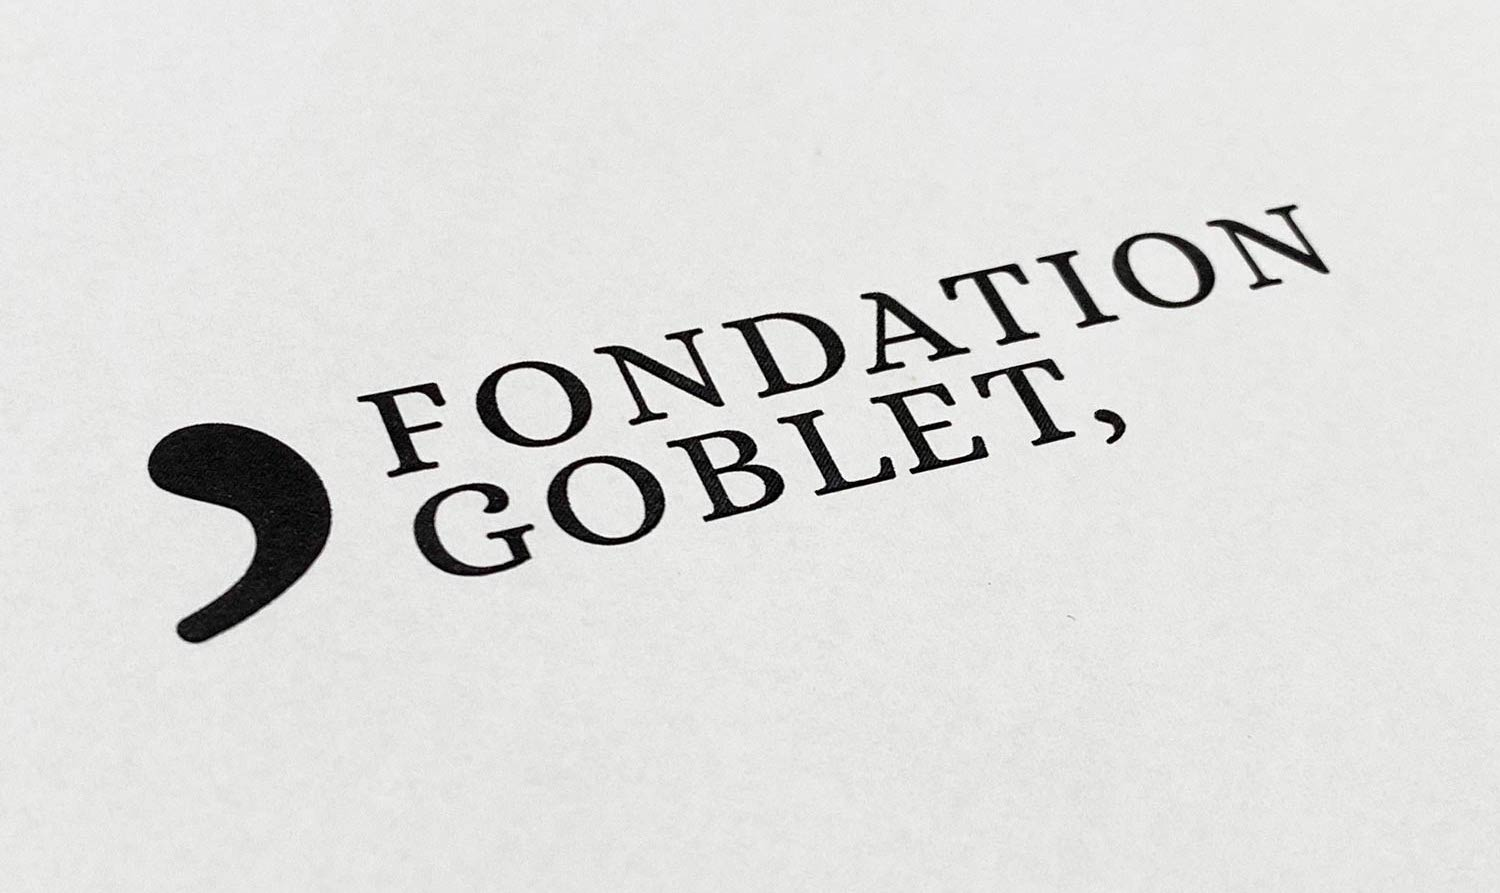 Fondation Goblet